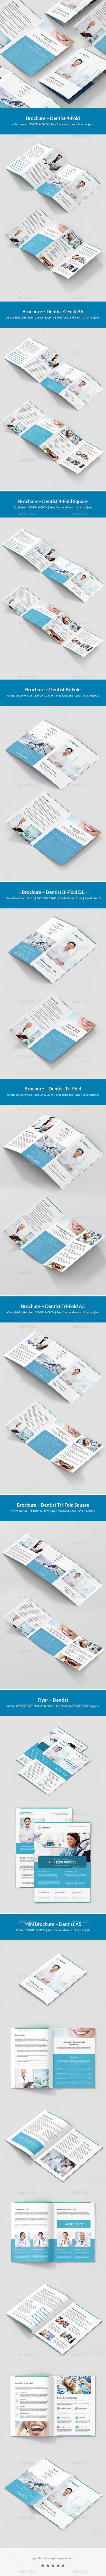 GR - Dentist – Brochures Bundle Print Templates 10 in 1 21334477